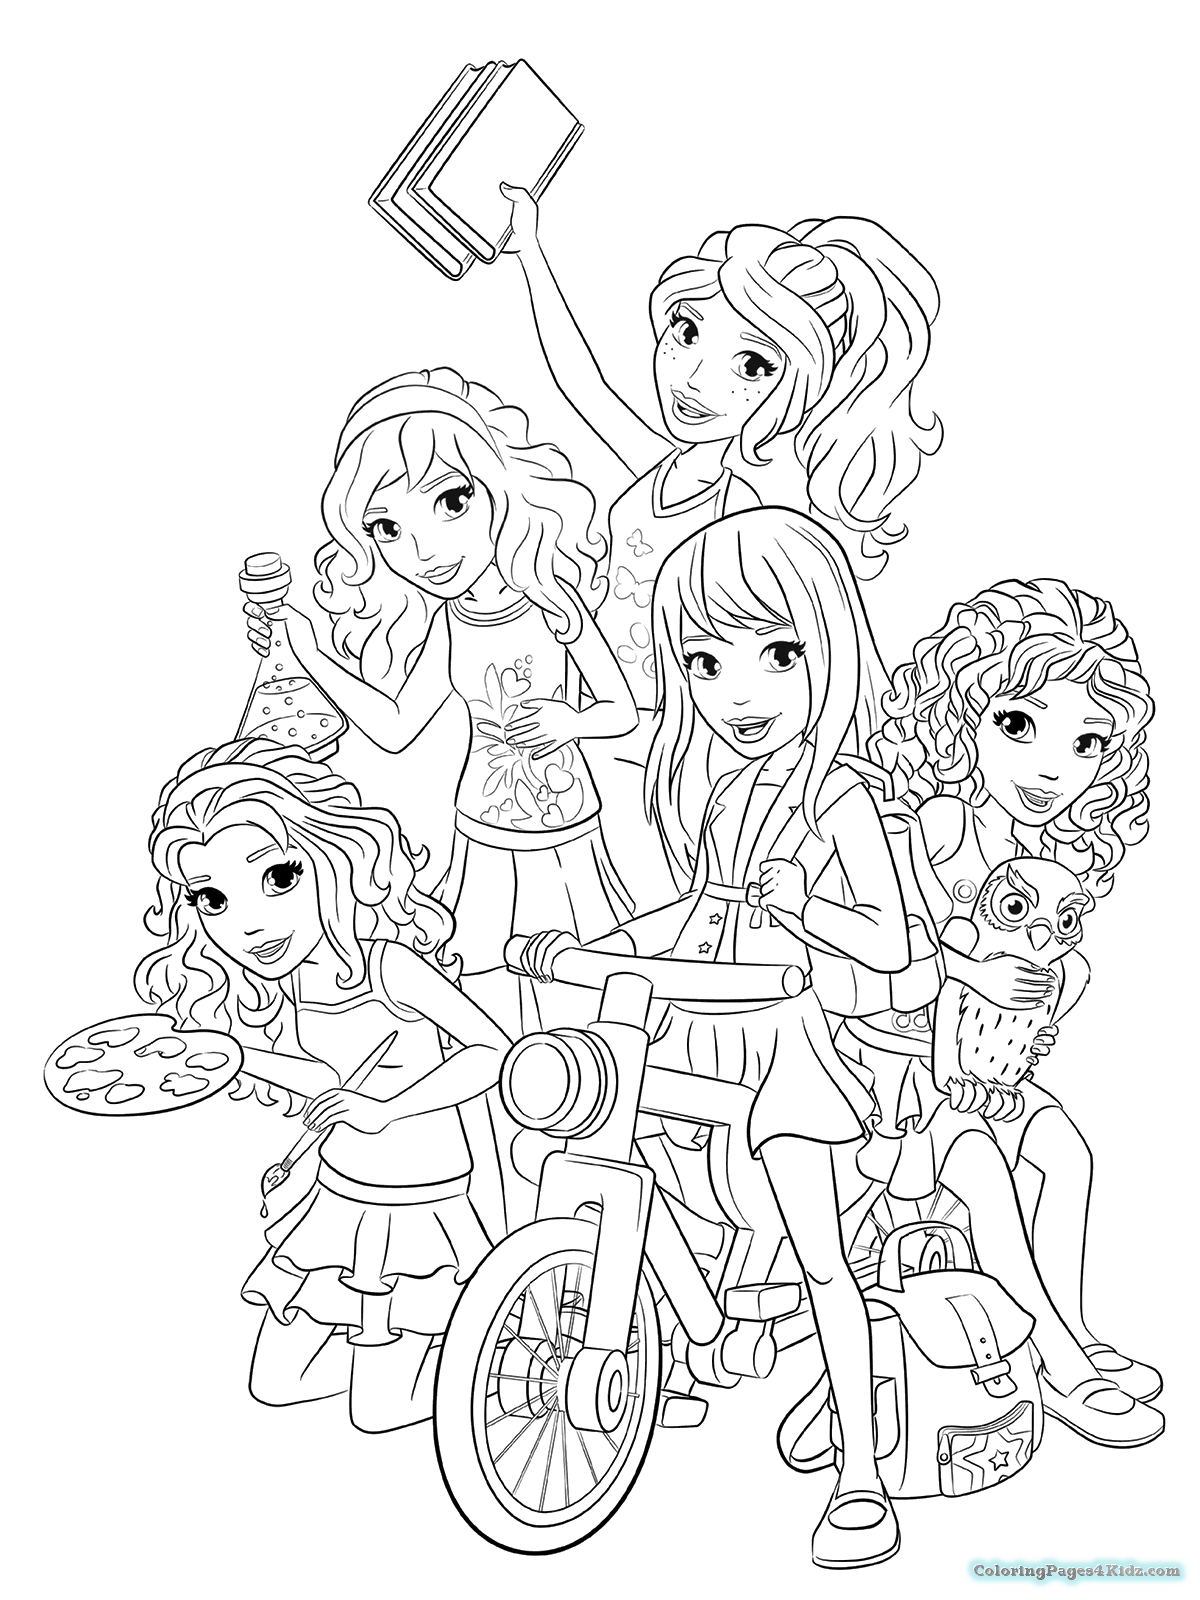 Lego Friends Coloring Pages childlifeme